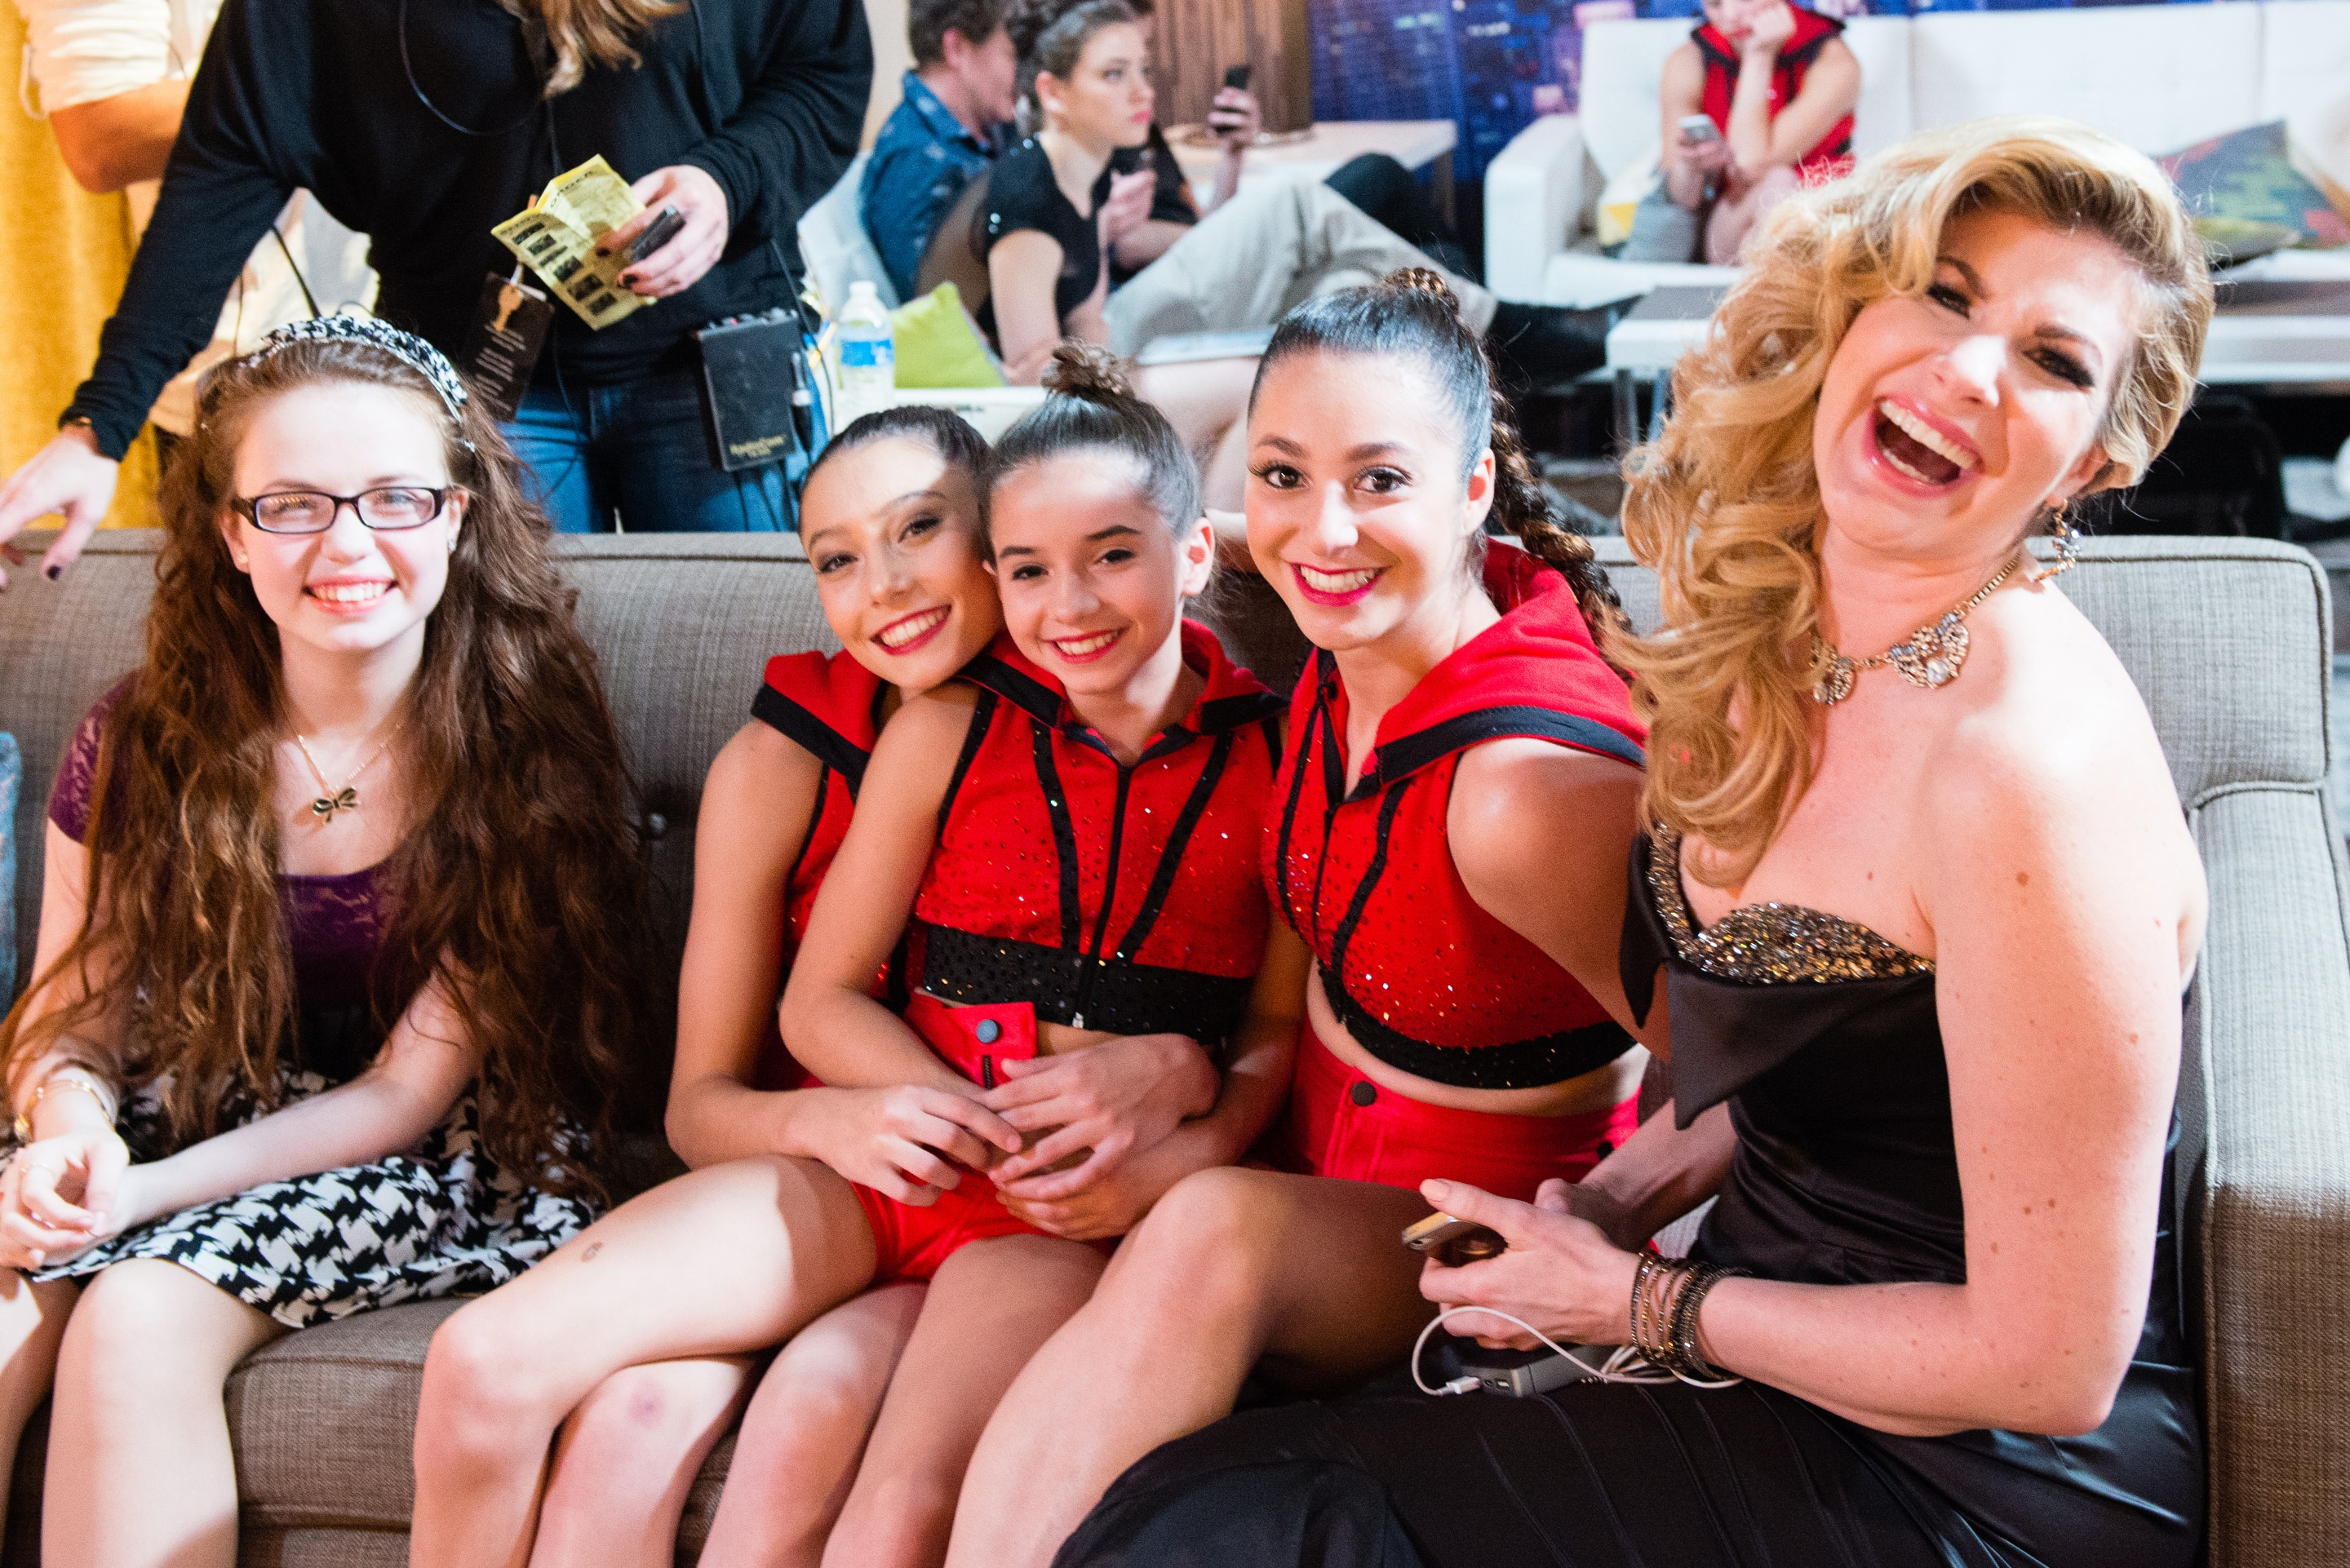 Americas Got Talent: Behind the Scenes: Top 12 Results